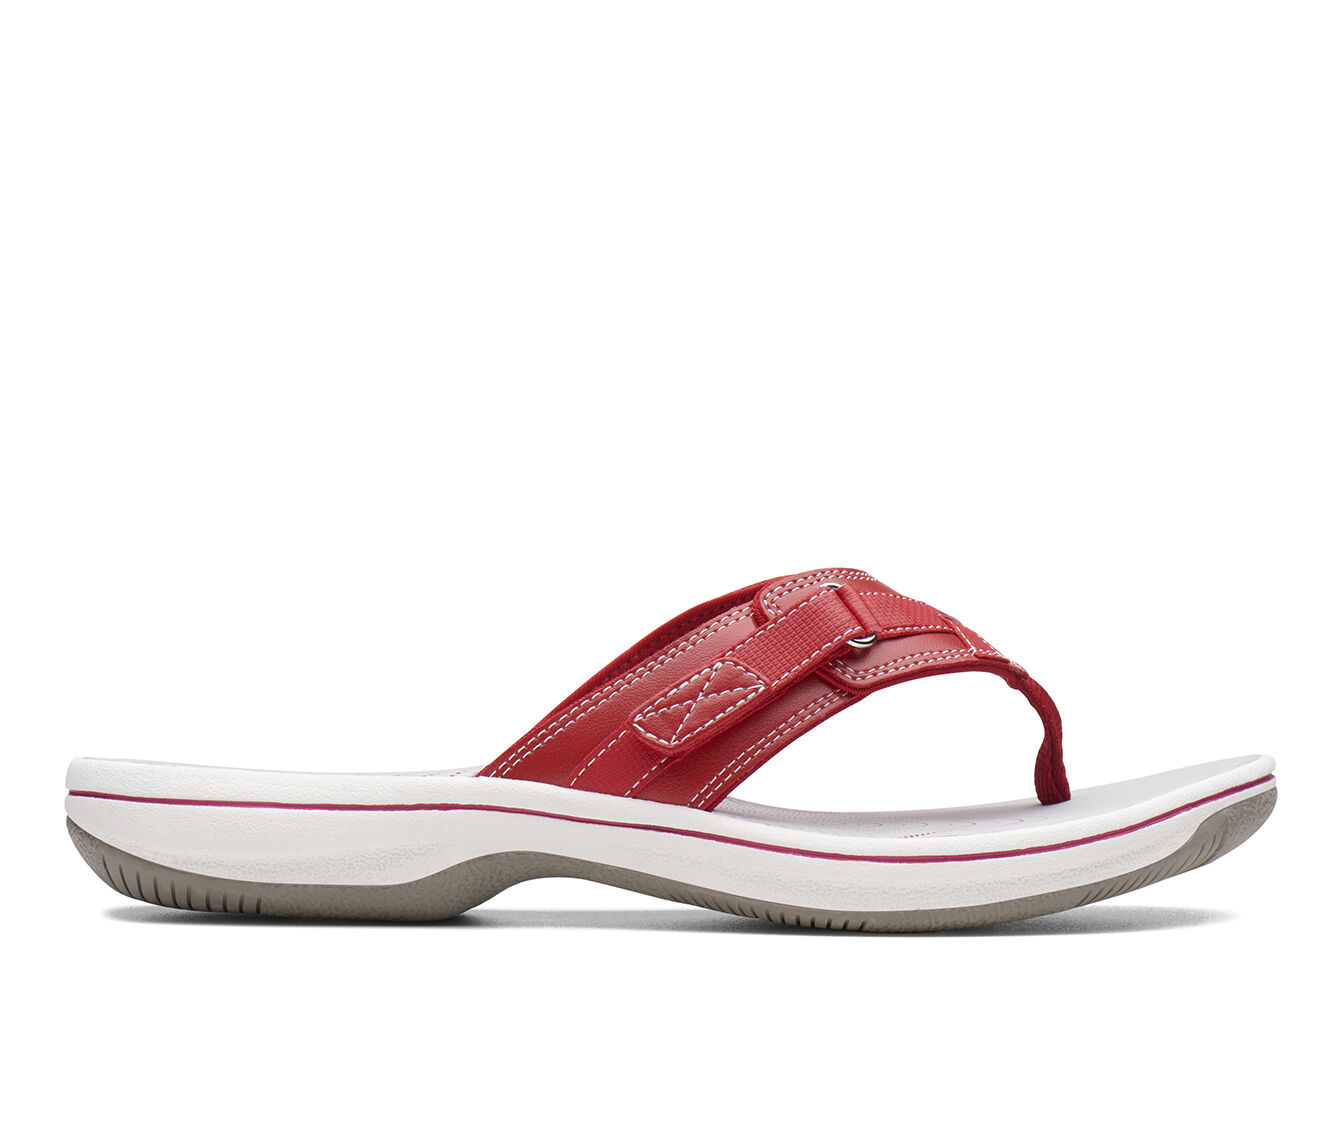 global ship Women's Clarks Breeze Sea Sandals Red Syn